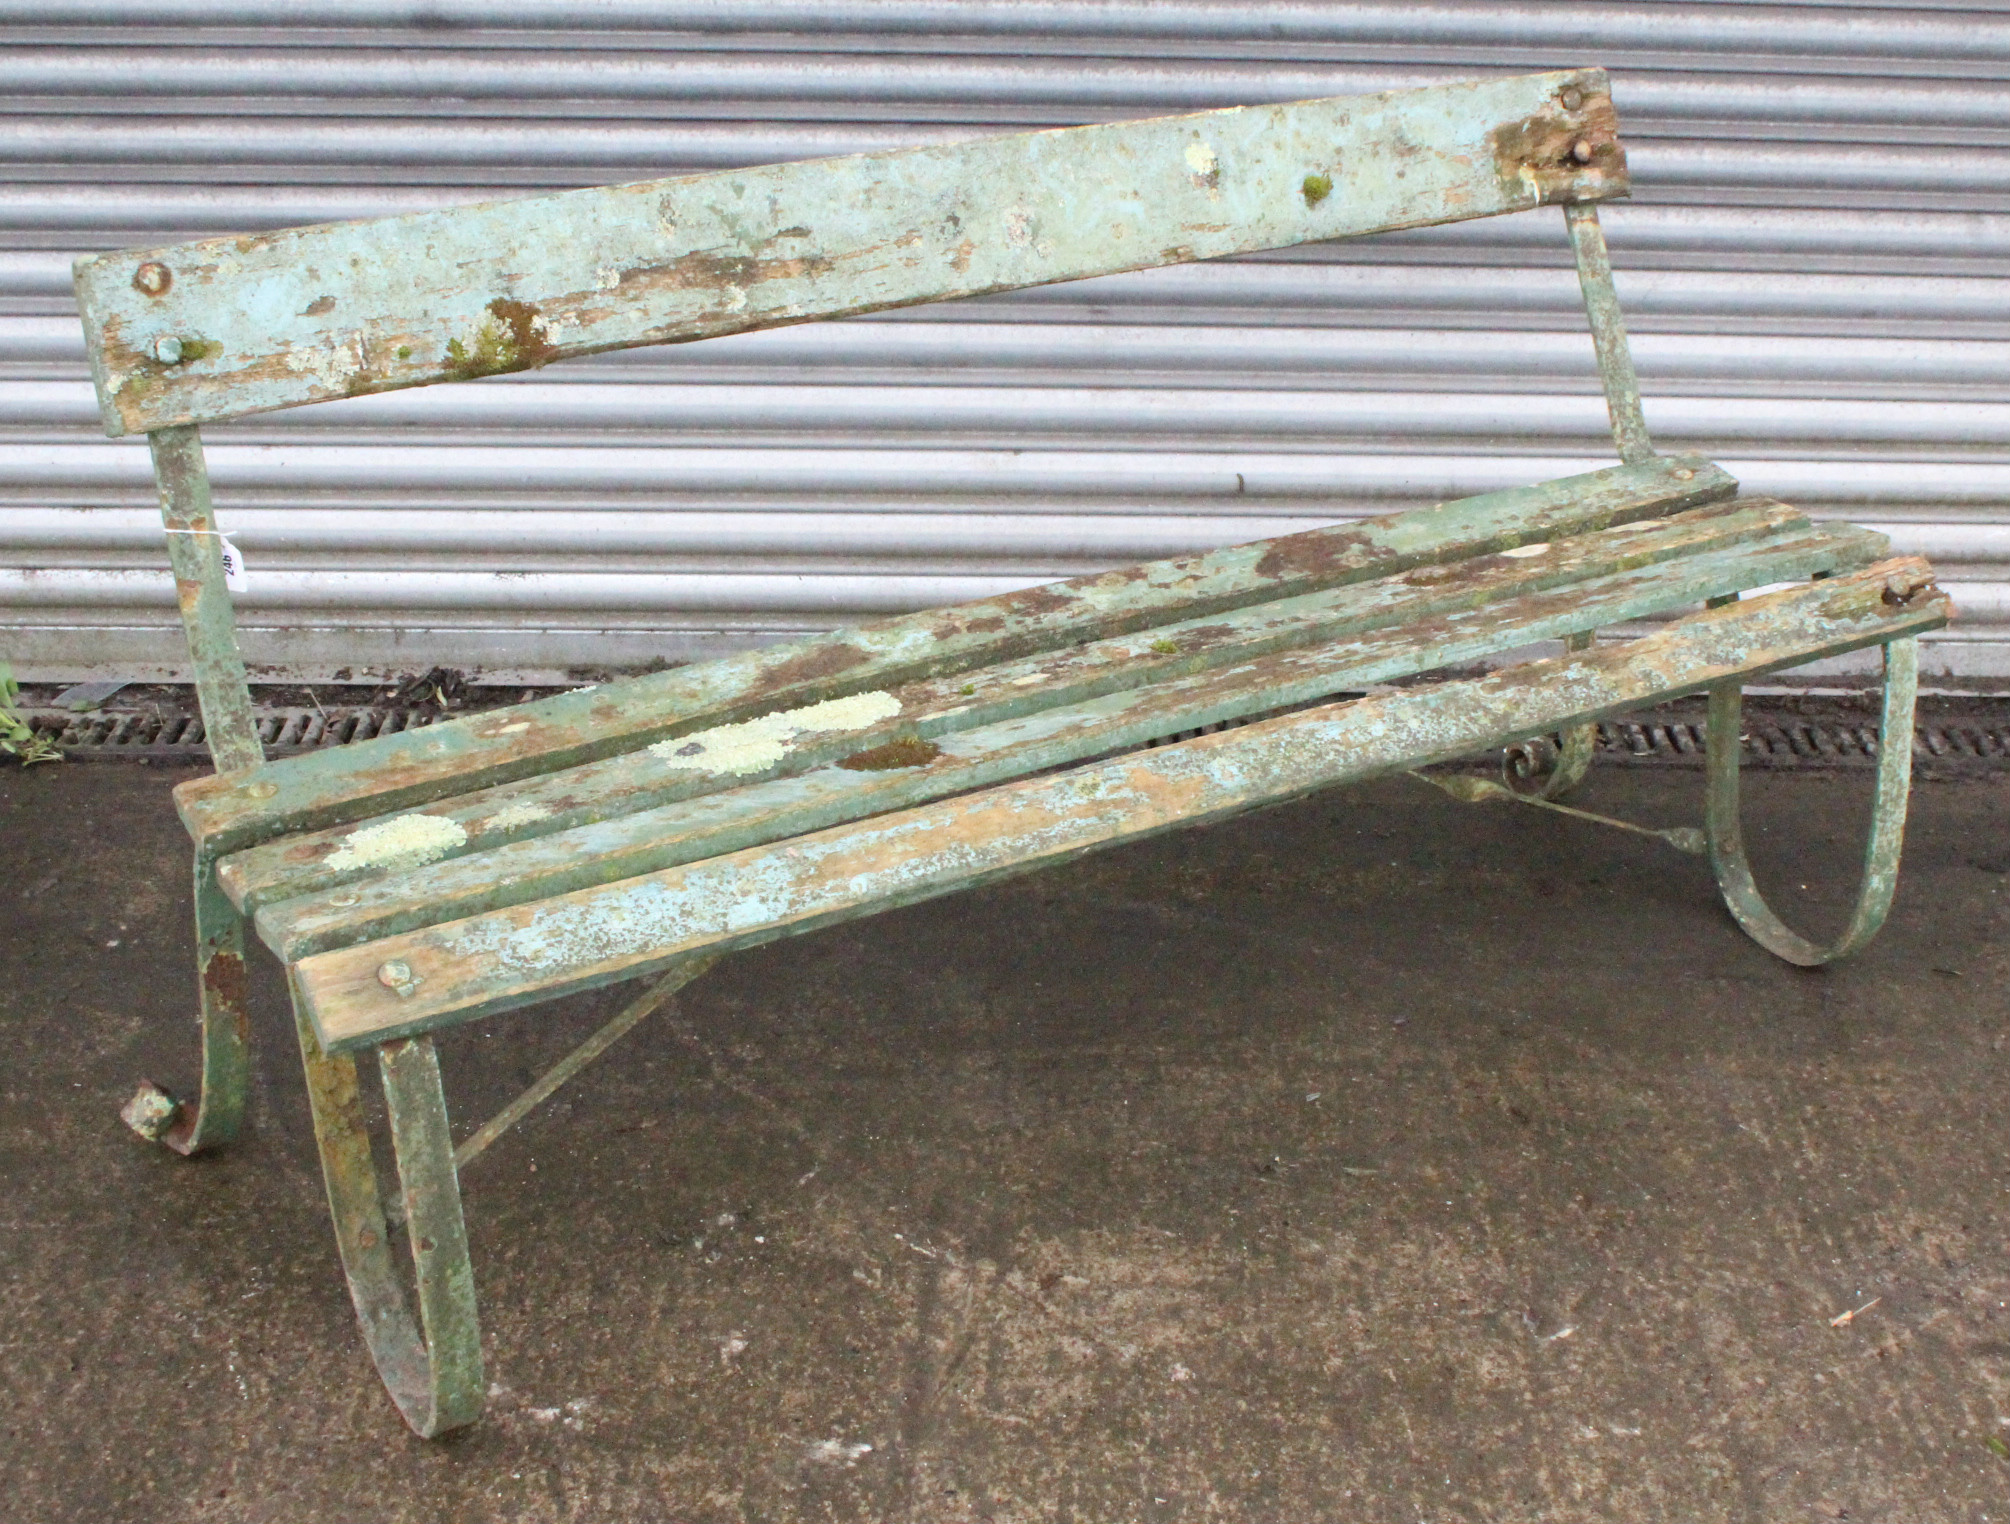 Lot 246 - A late 19th/early 20th century green painted teak & wrought-iron garden bench on scroll-shaped end